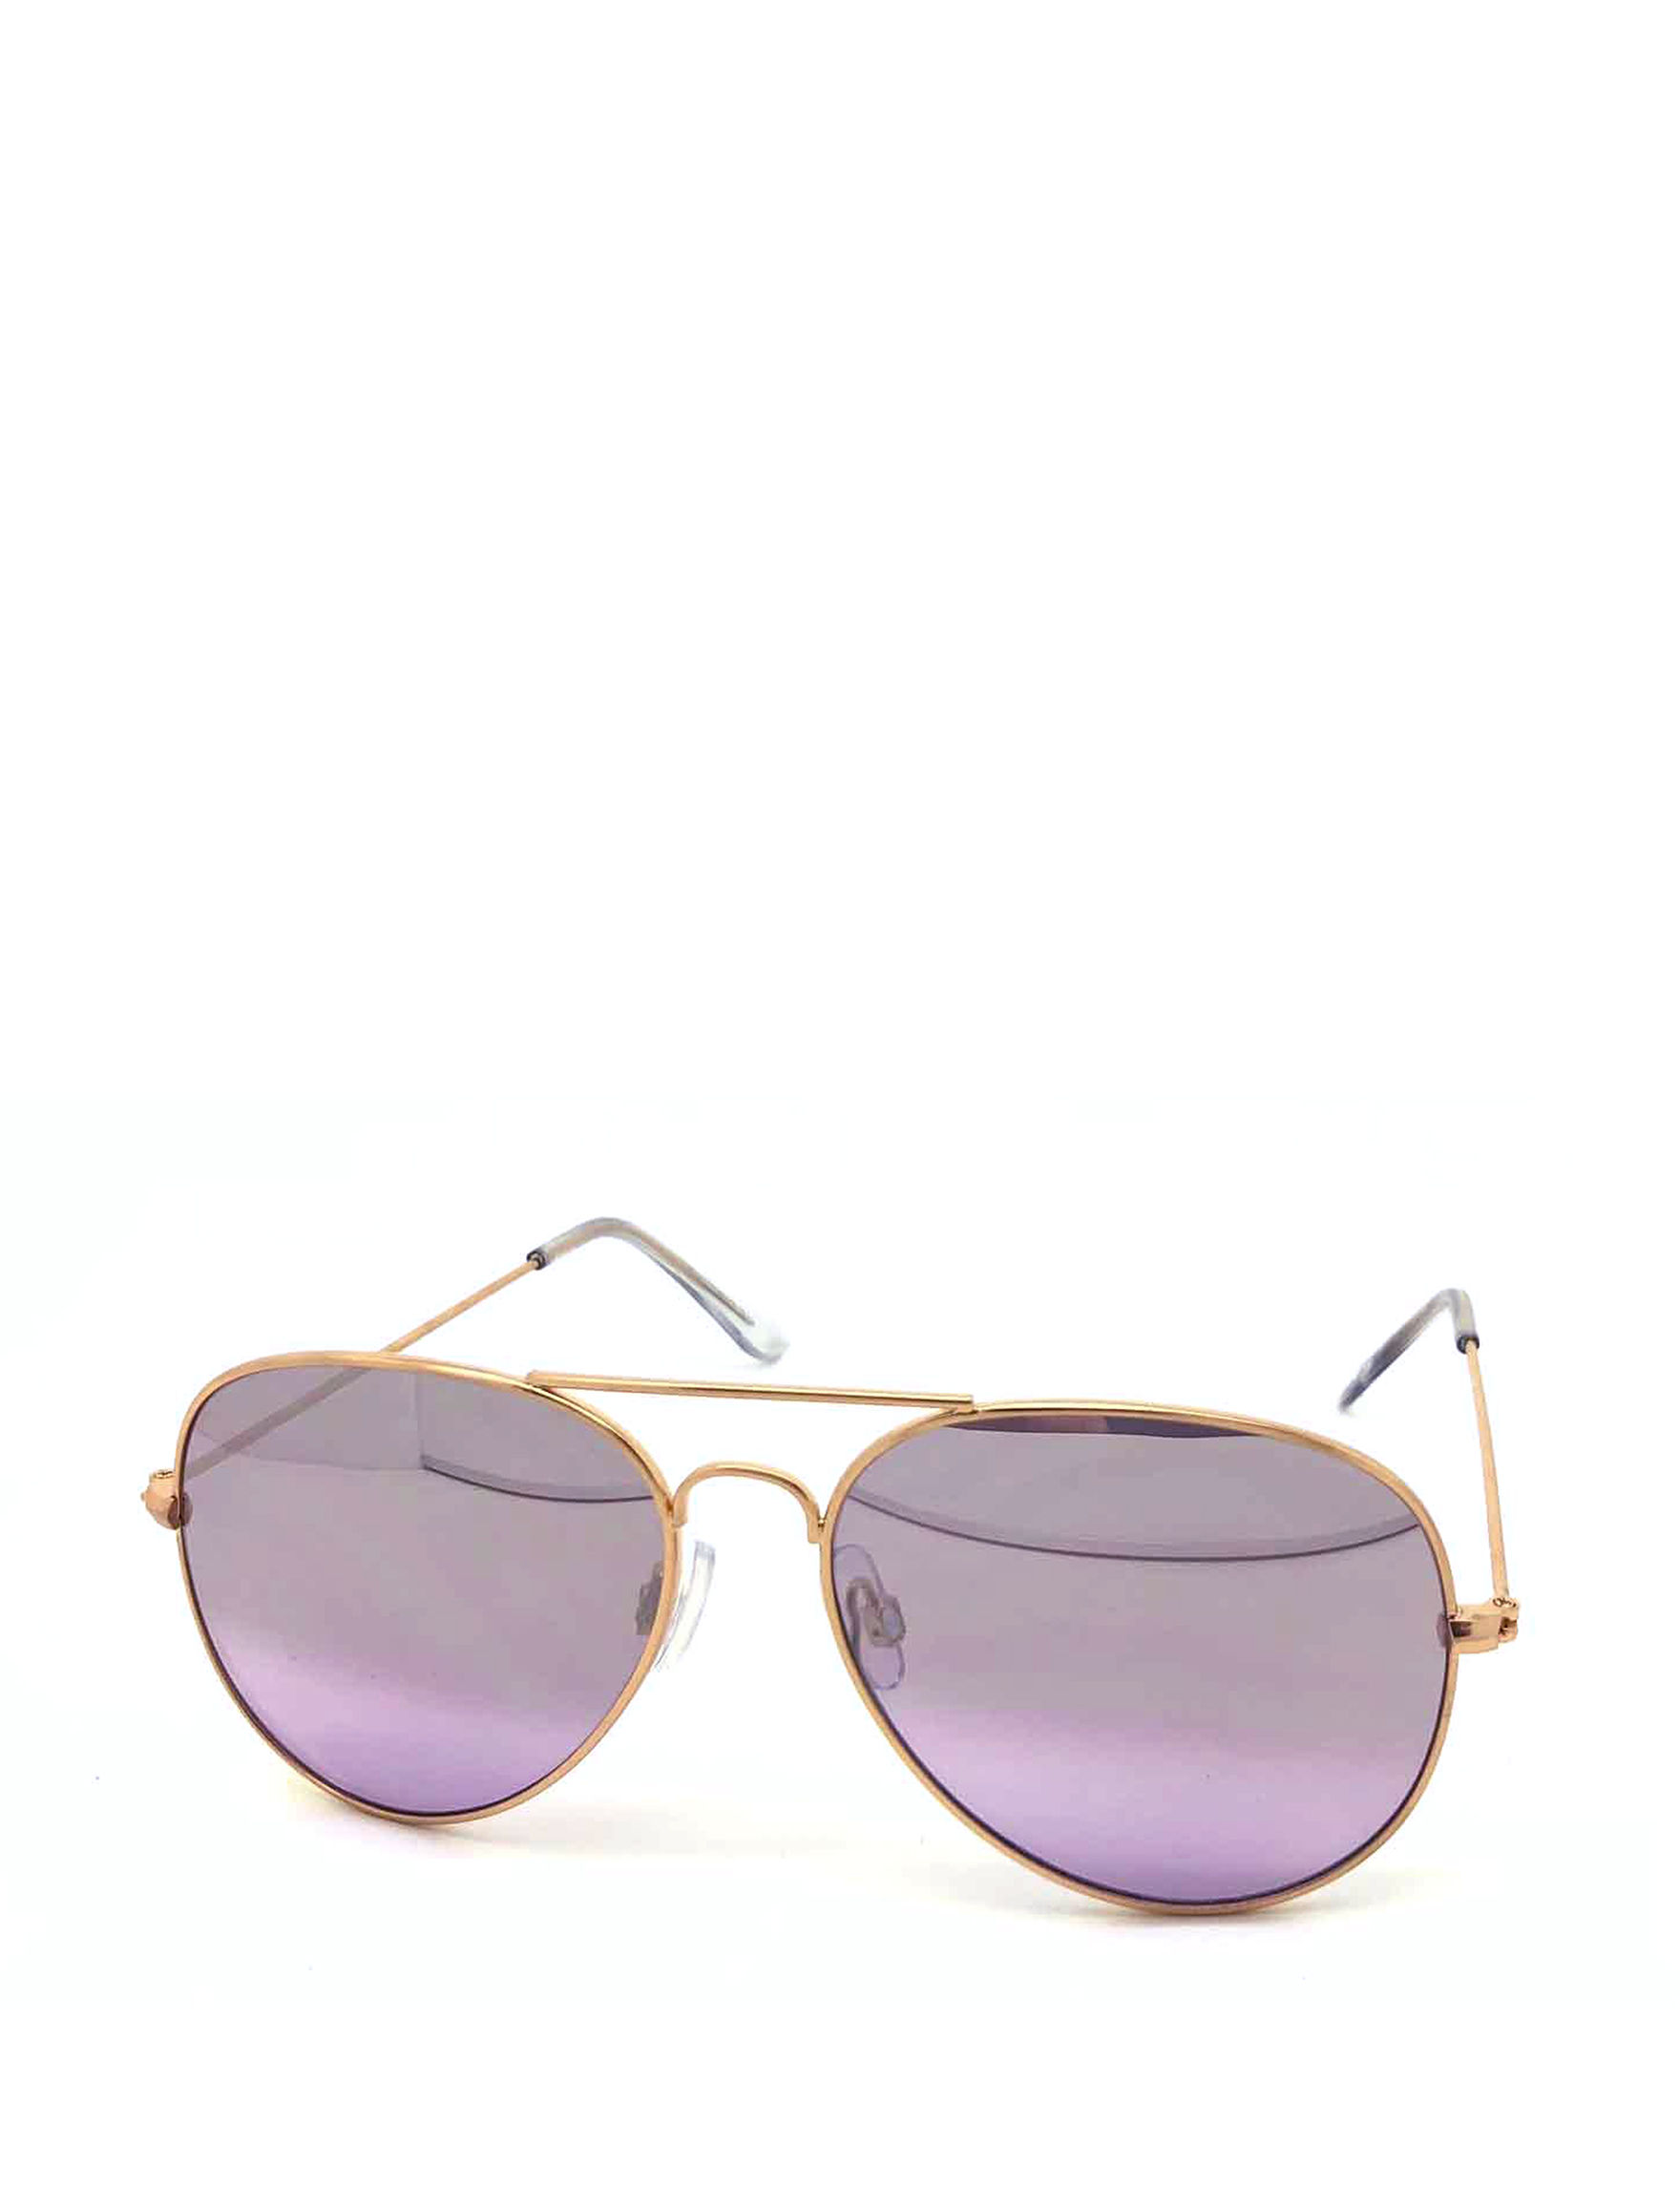 Signature Studio Purple / Gold